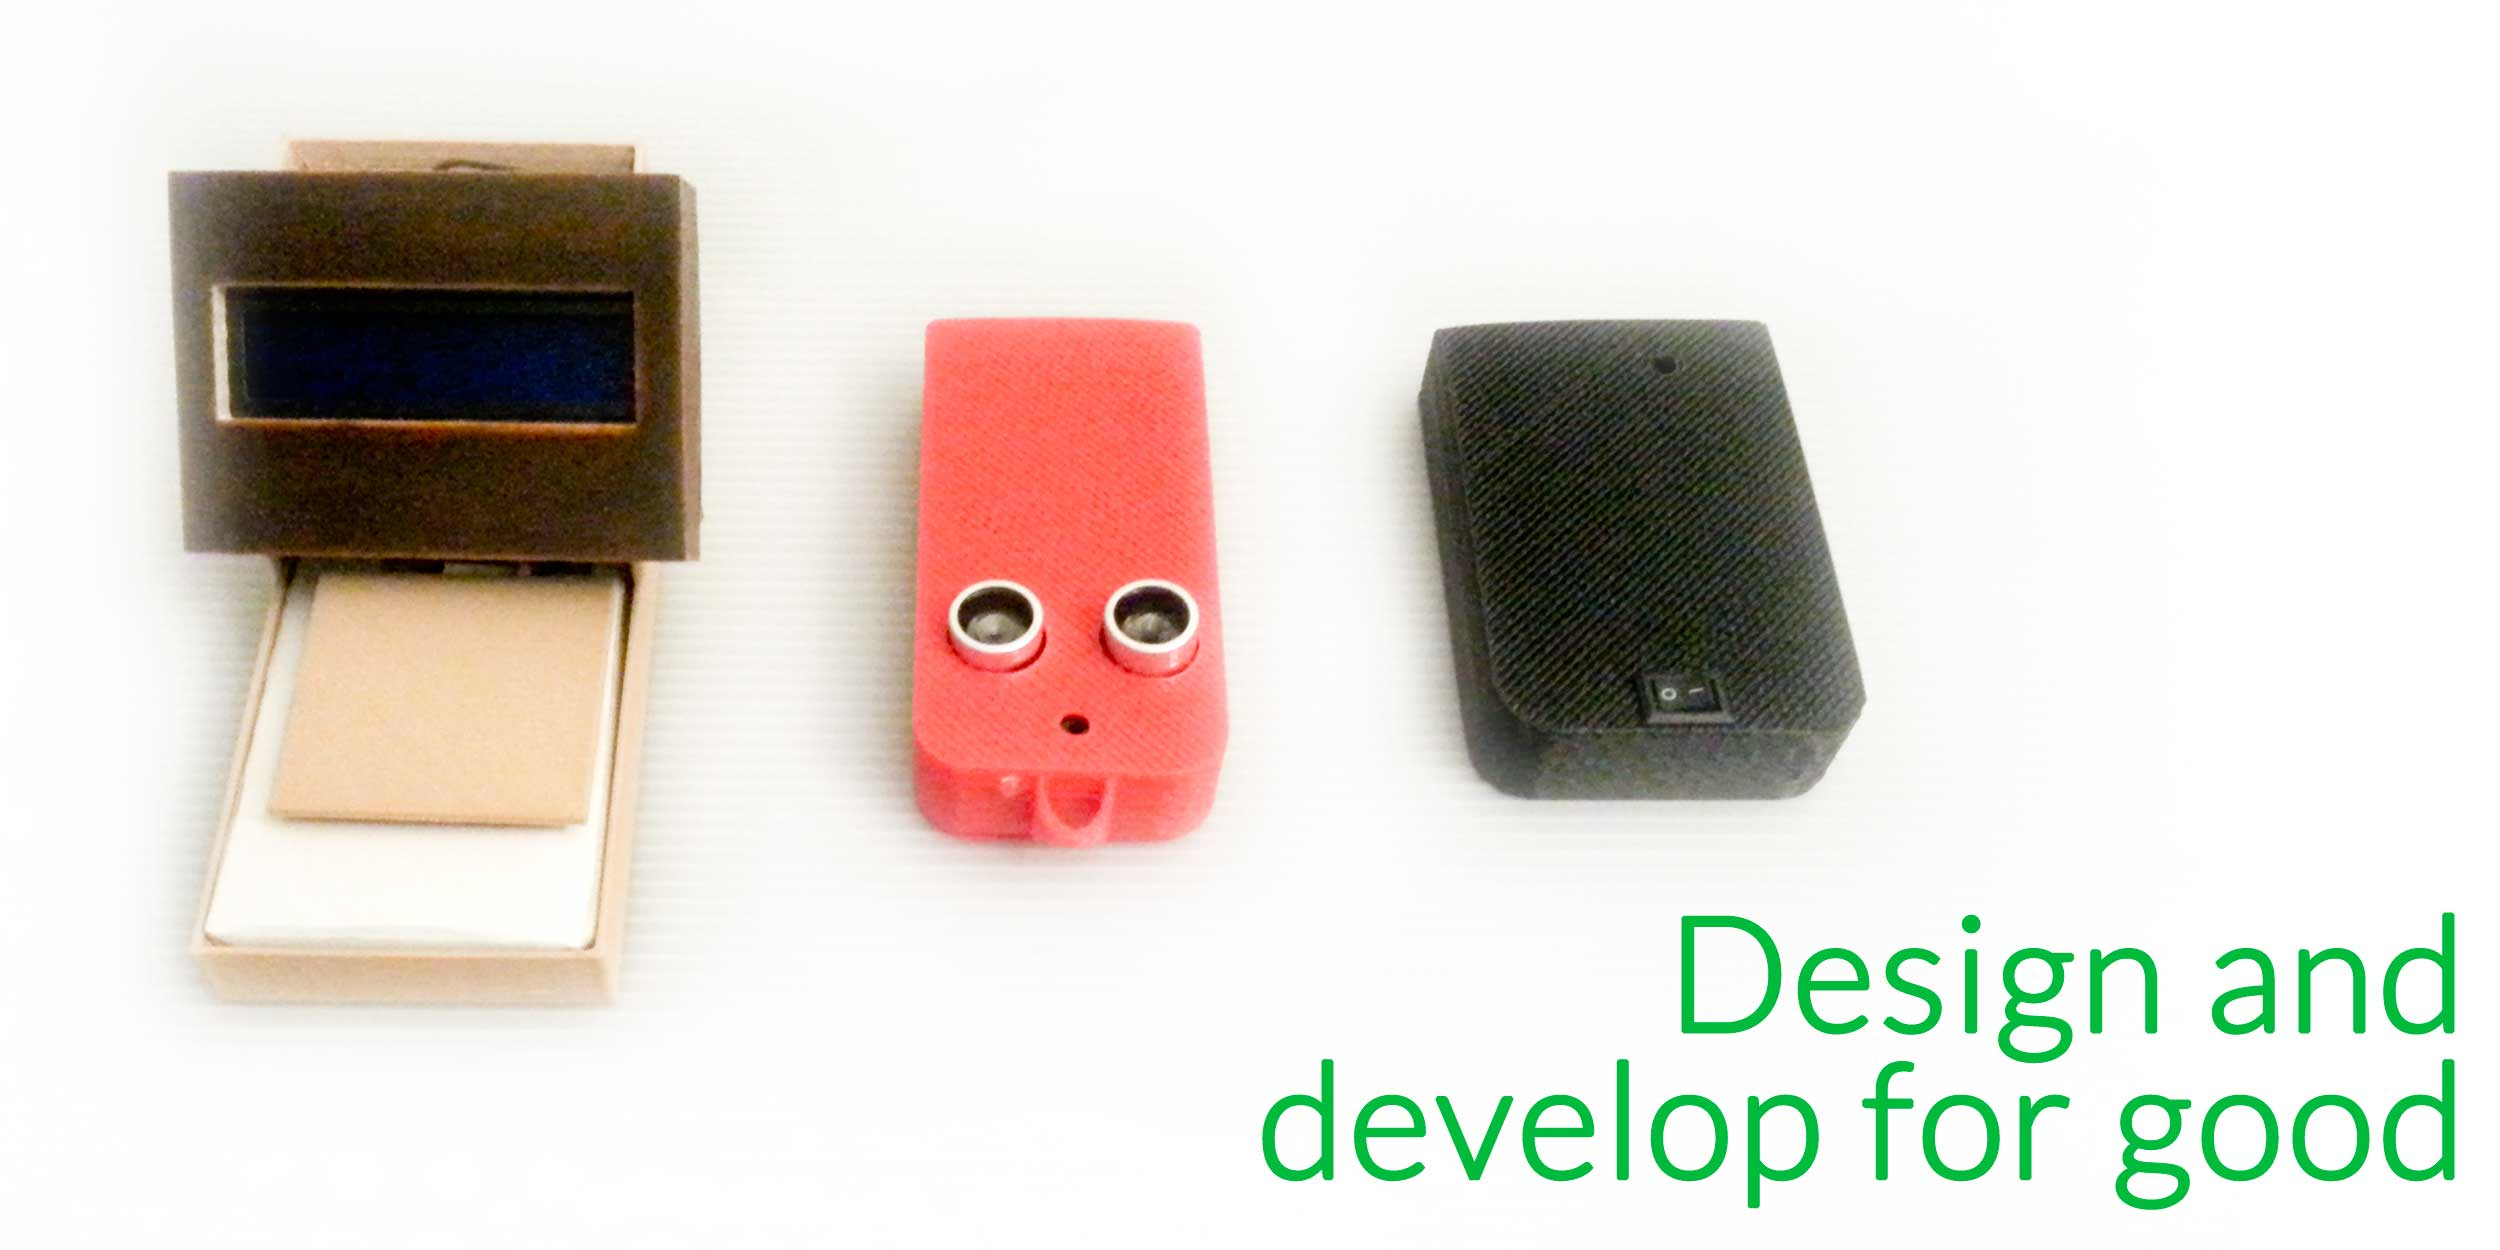 Design and Develop for good - Simple Little Developments